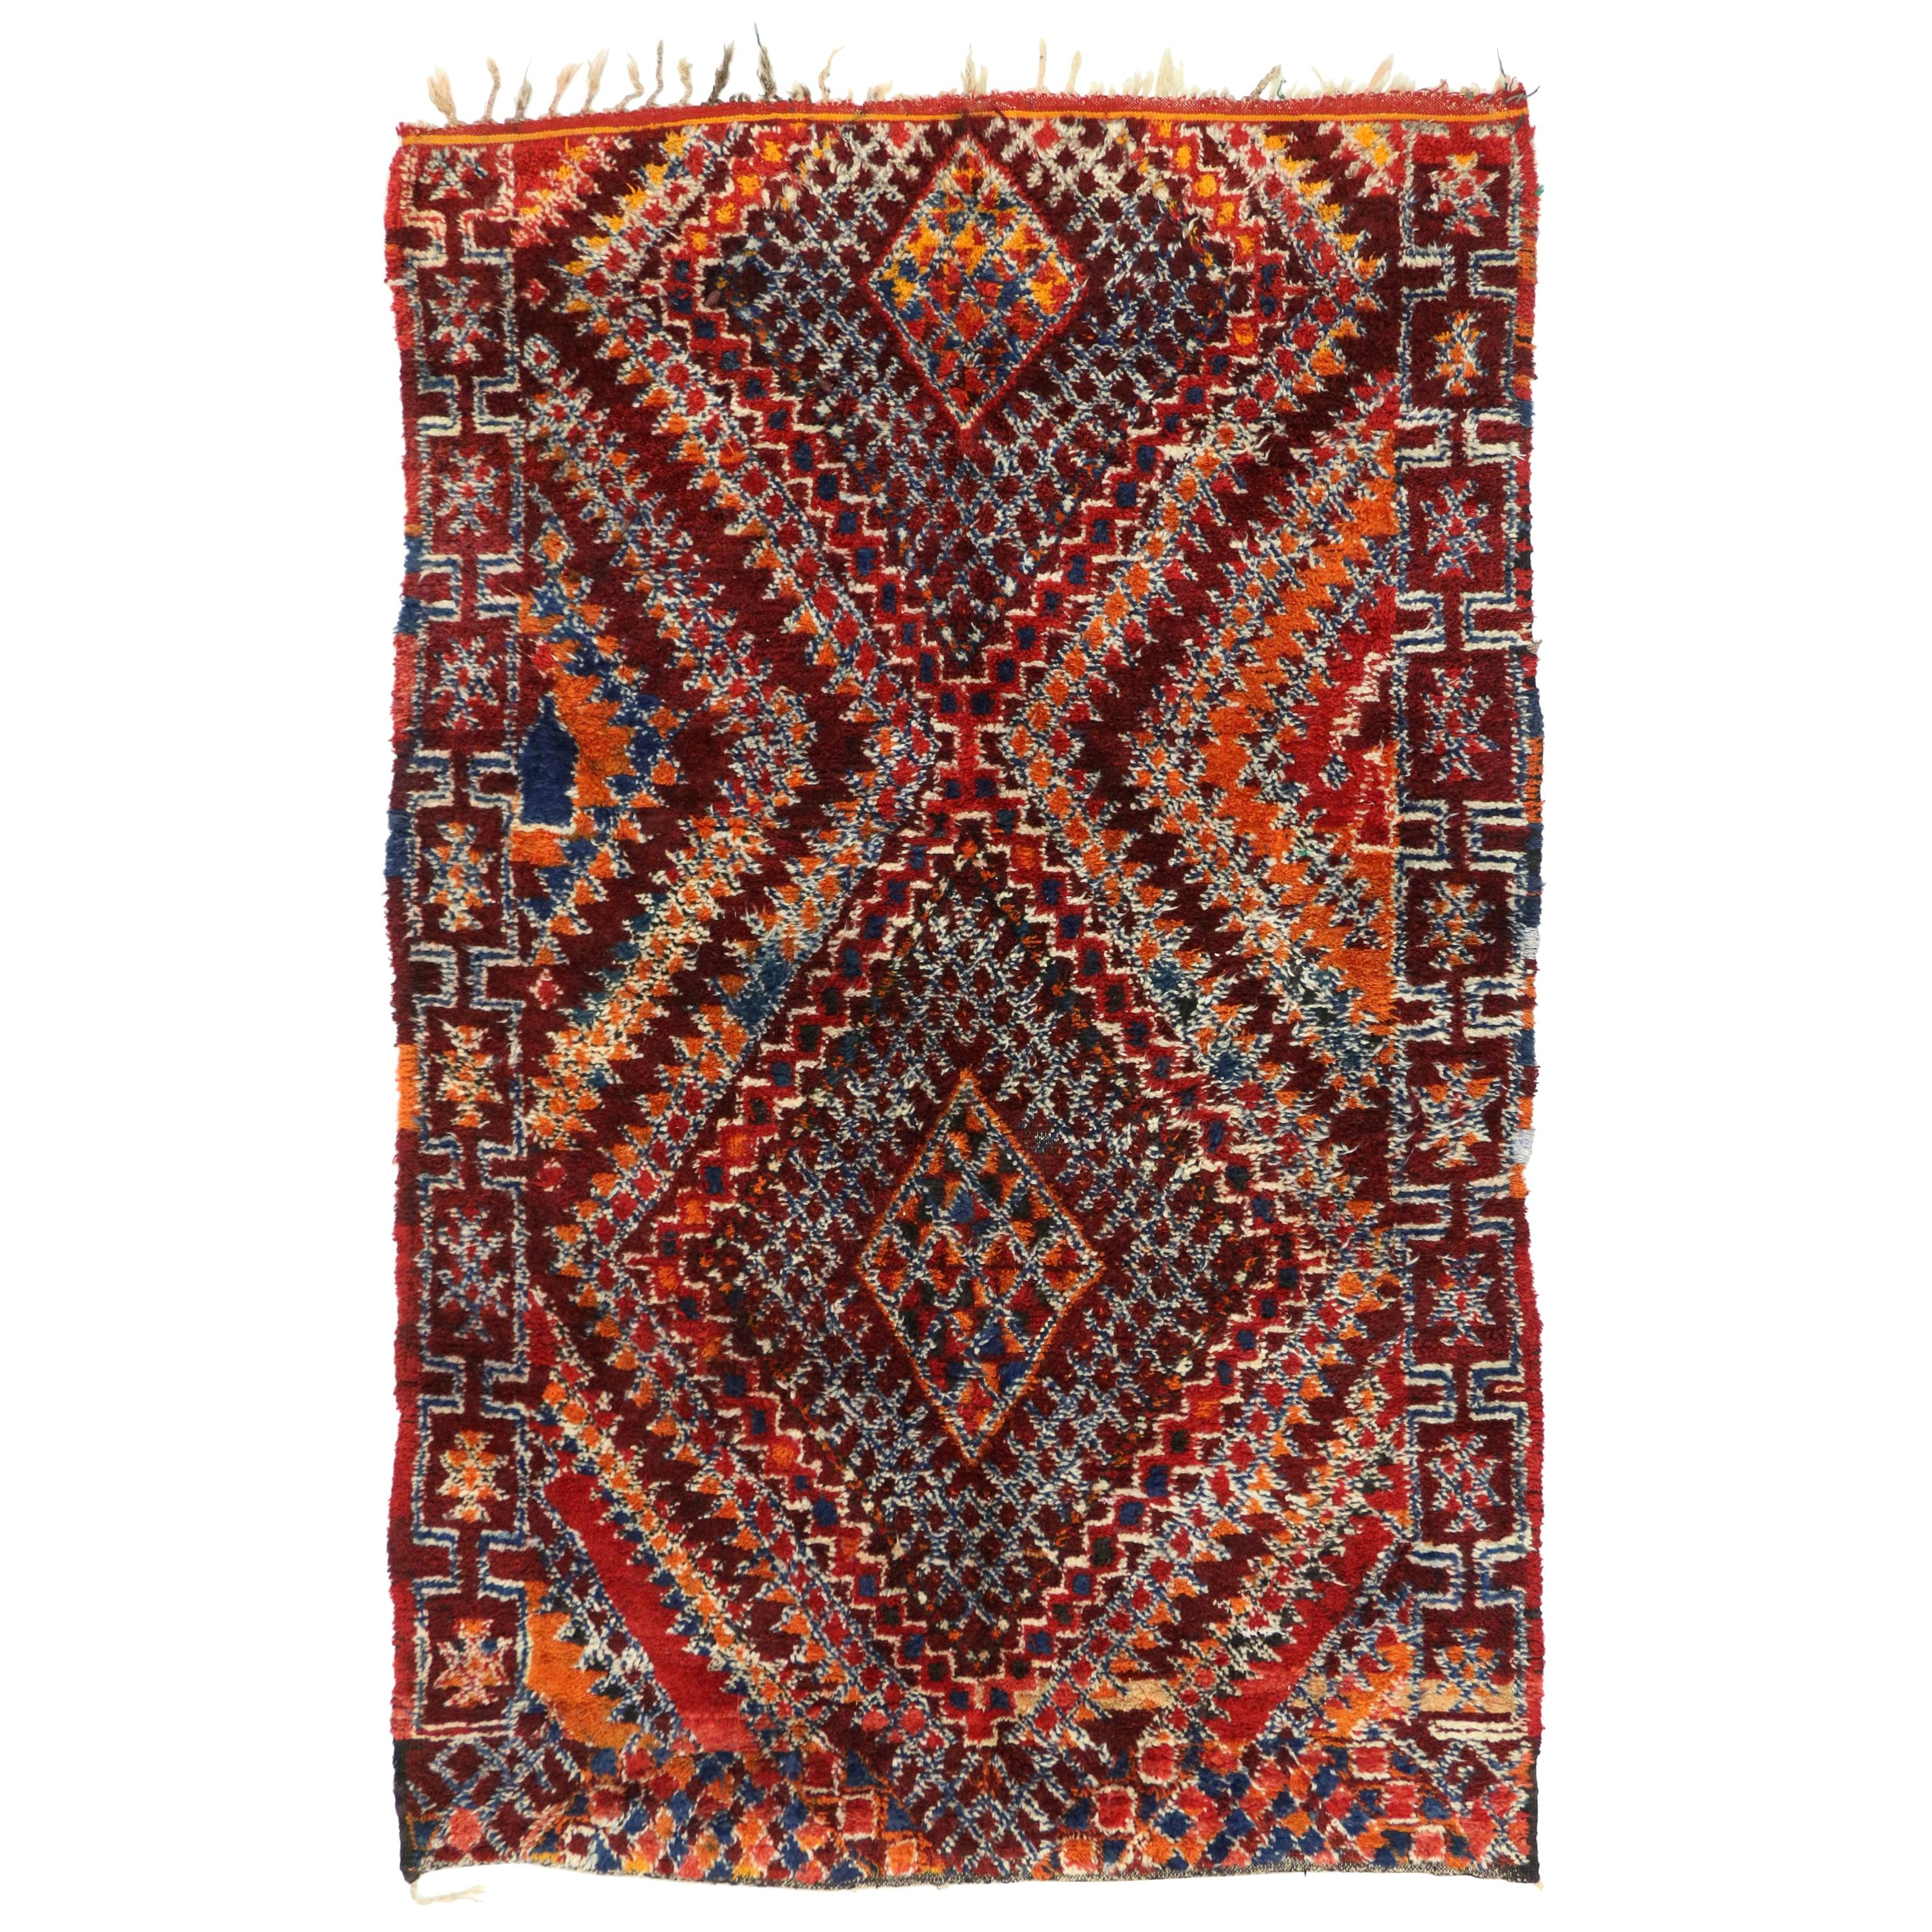 Vintage Moroccan Zayane Rug with Tribal Style, Colorful Moroccan Berber Carpet